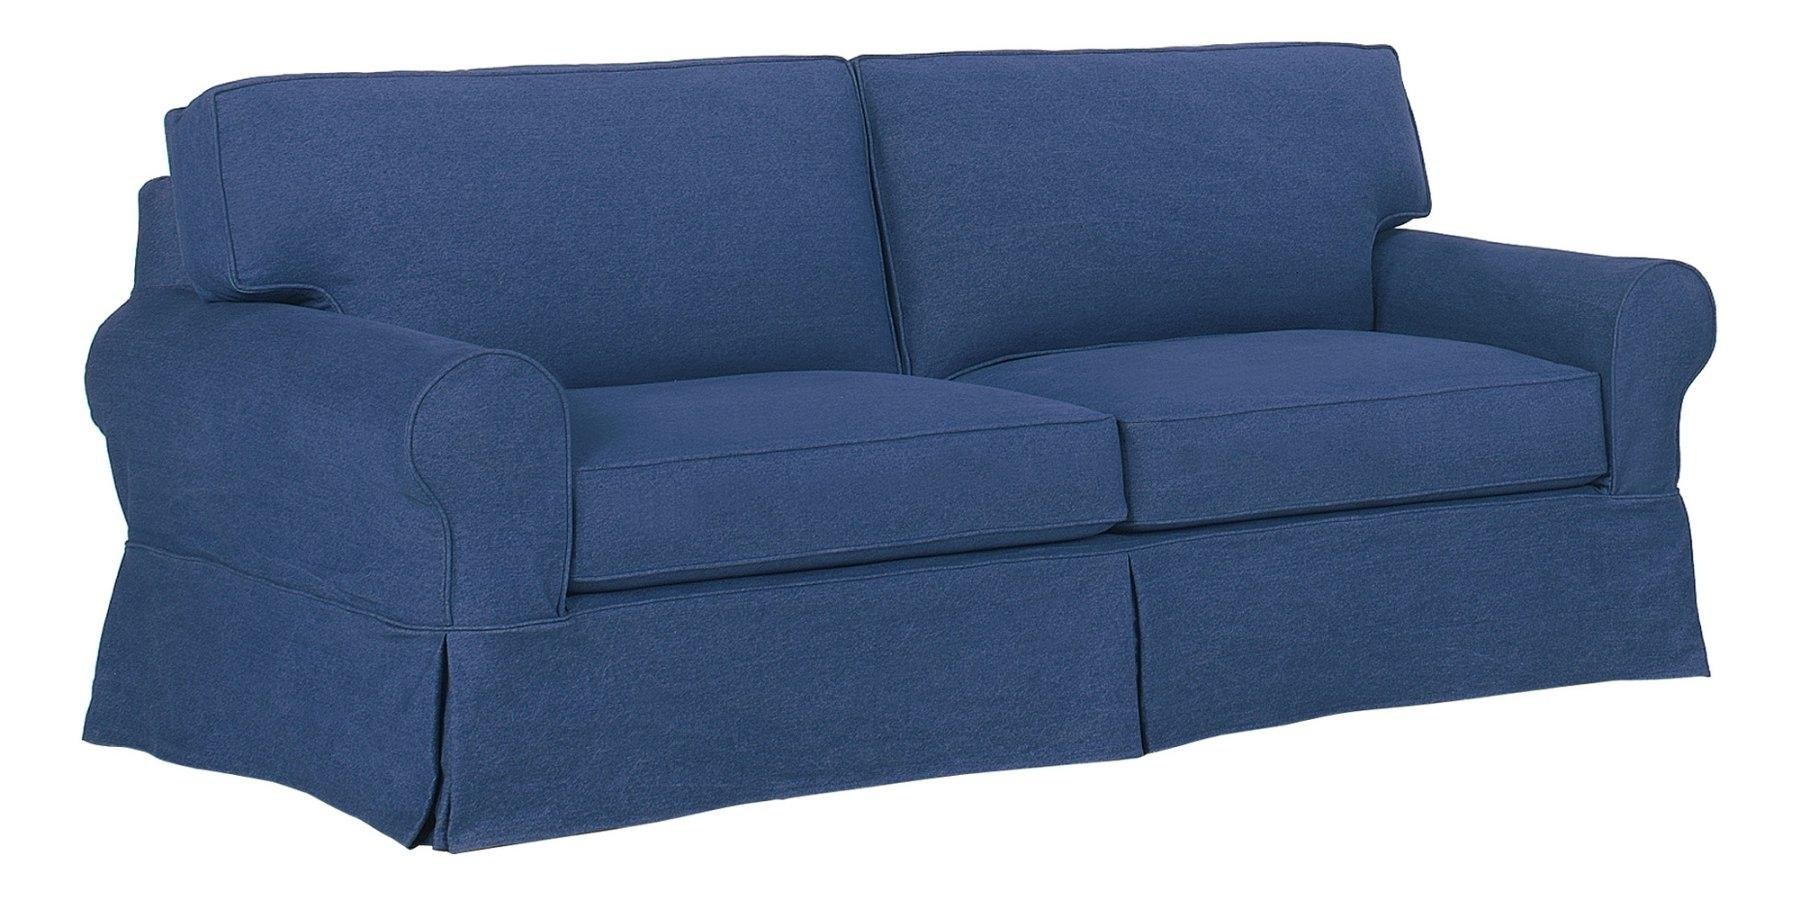 Denim Slipcovered Sofa With Chaise & Ottoman | Club Furniture Regarding Denim Sofas And Loveseats (Image 6 of 12)